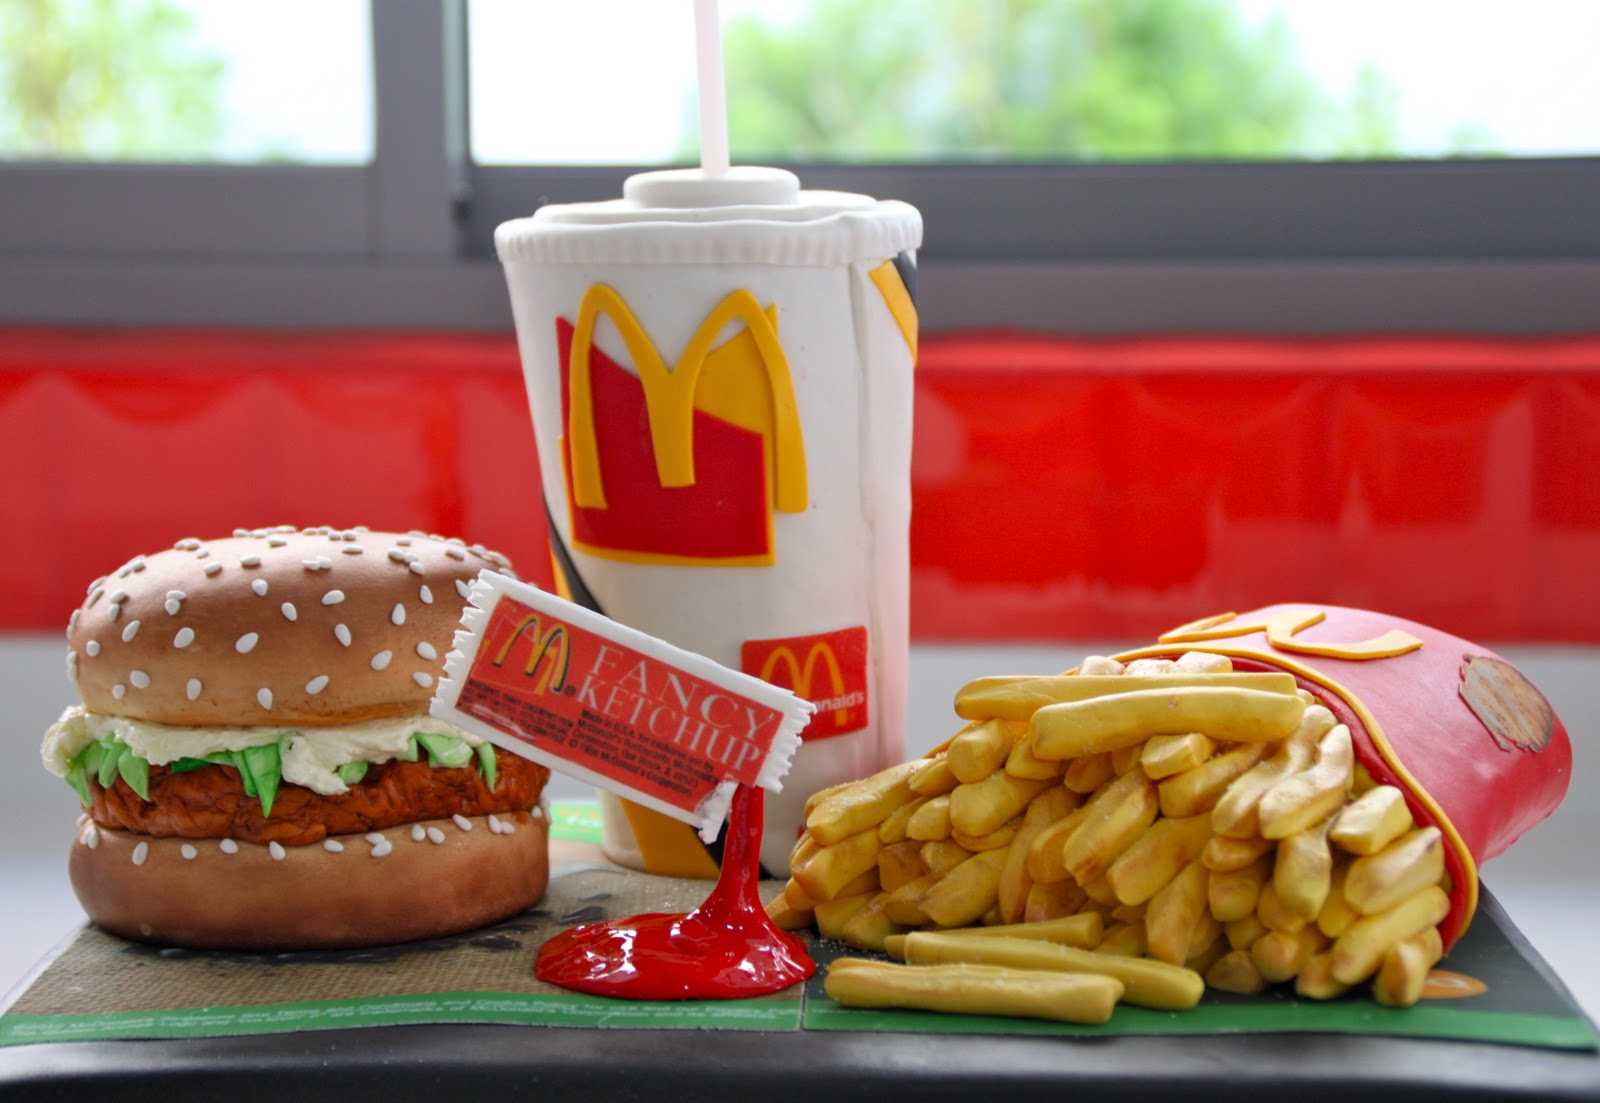 Celebrate With Cake Mcdonalds Mcchicken Burger Meal Cake